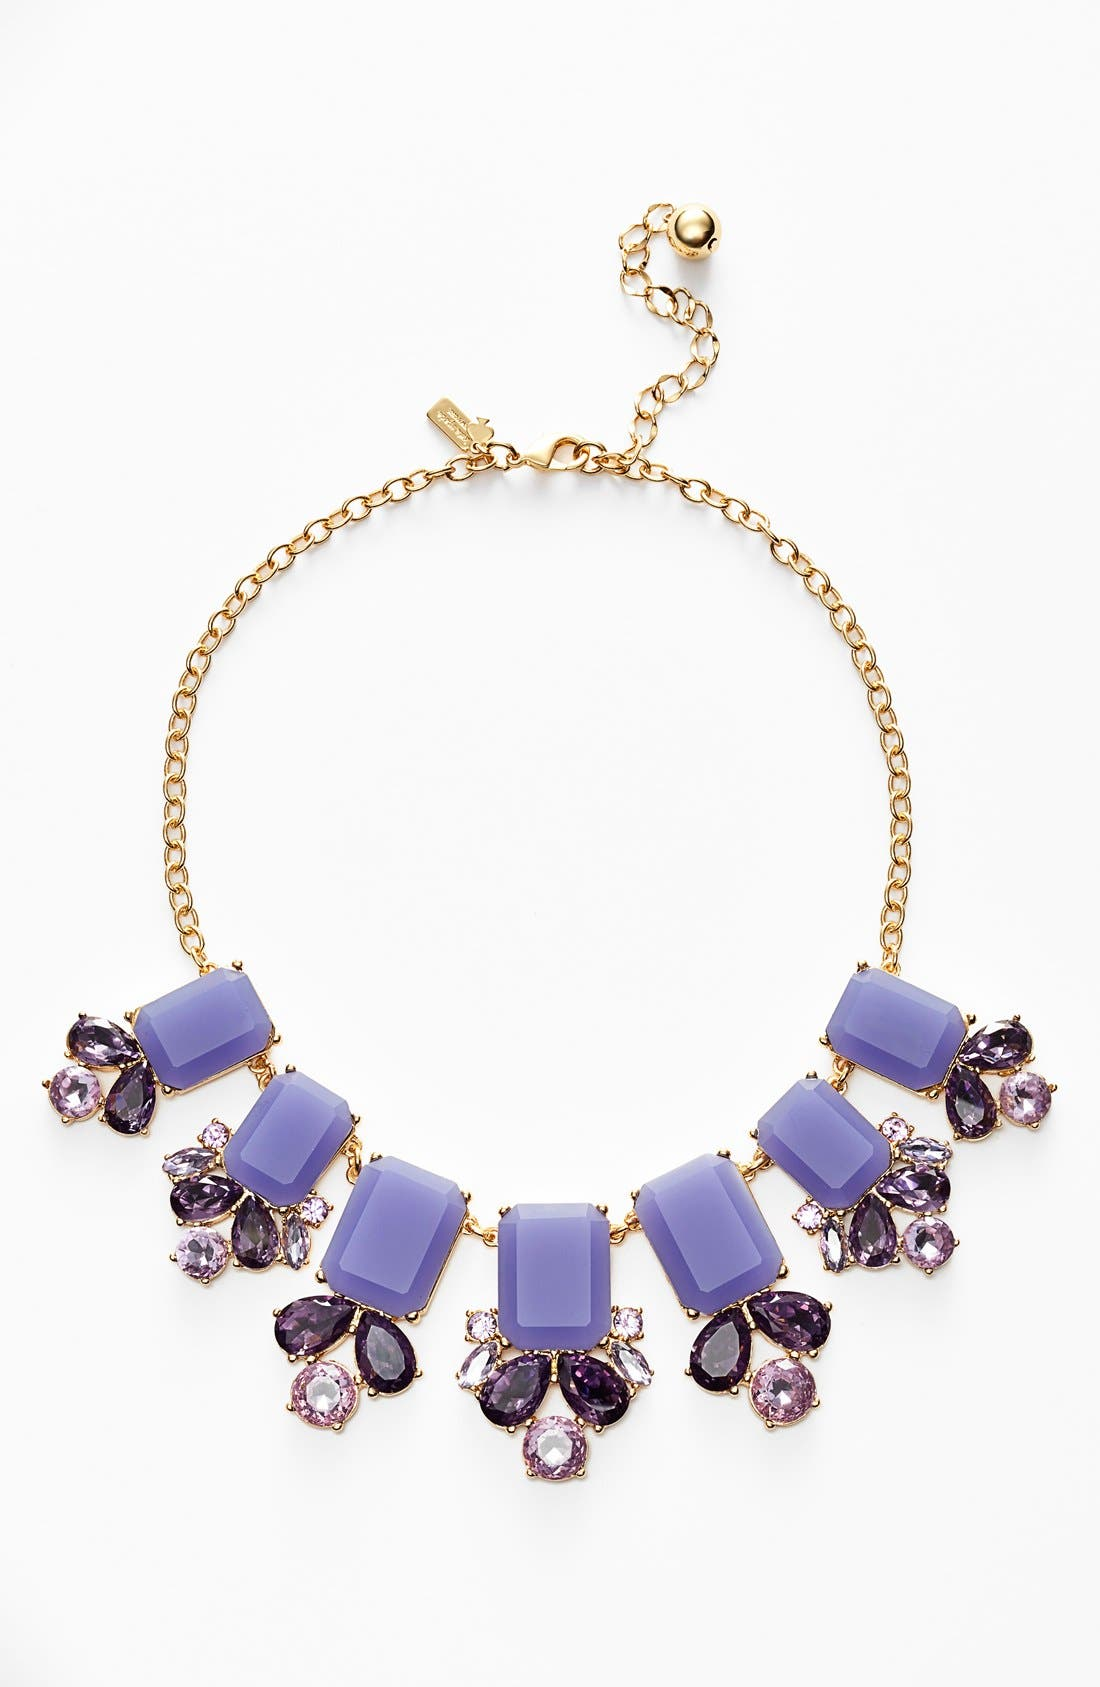 KATE SPADE NEW YORK,                             'glitzy spritz' statement necklace,                             Main thumbnail 1, color,                             500